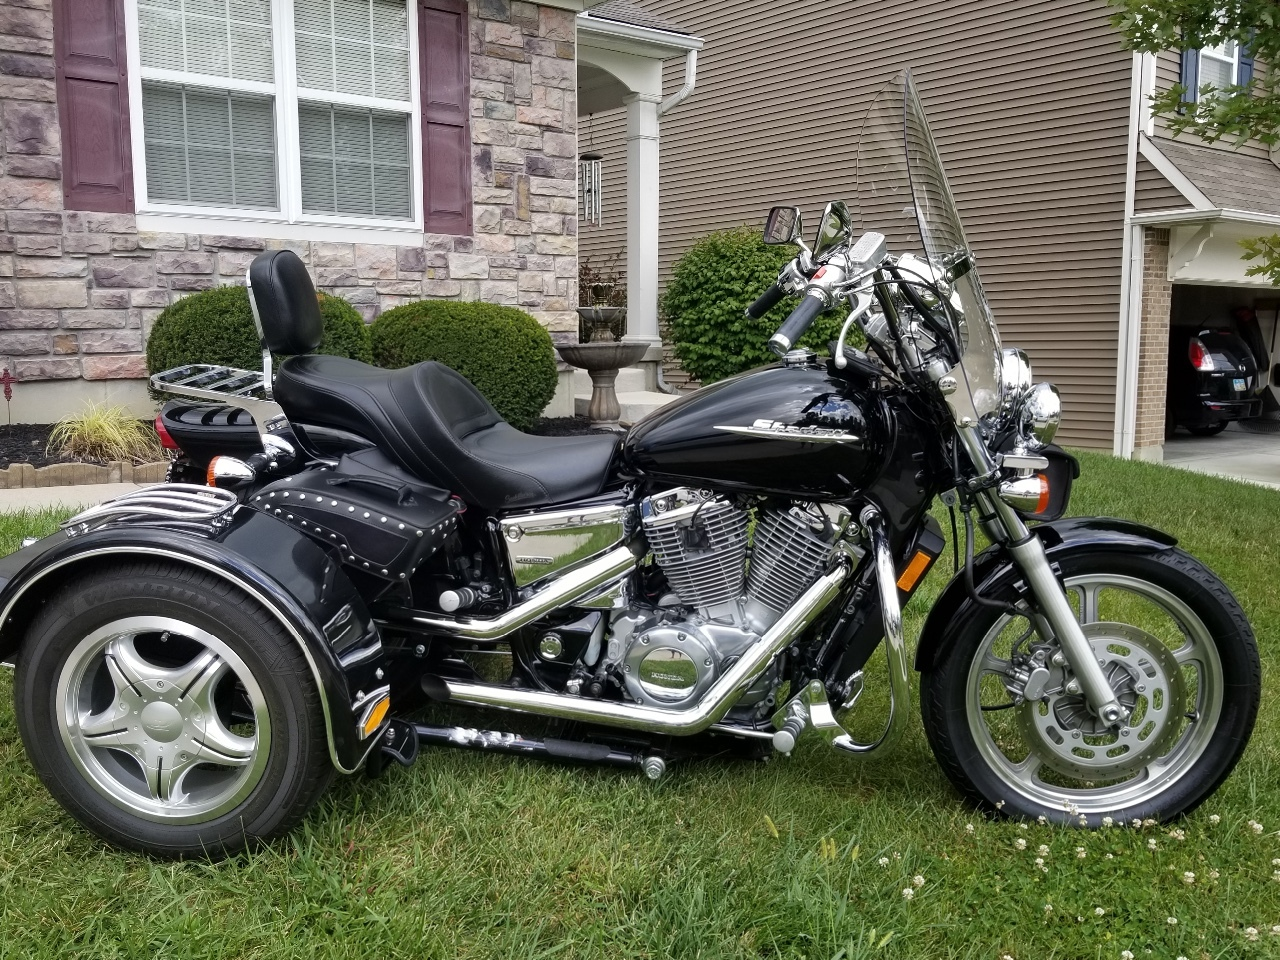 2 Honda Shadow Trike Motorcycles For Sale Cycle Trader